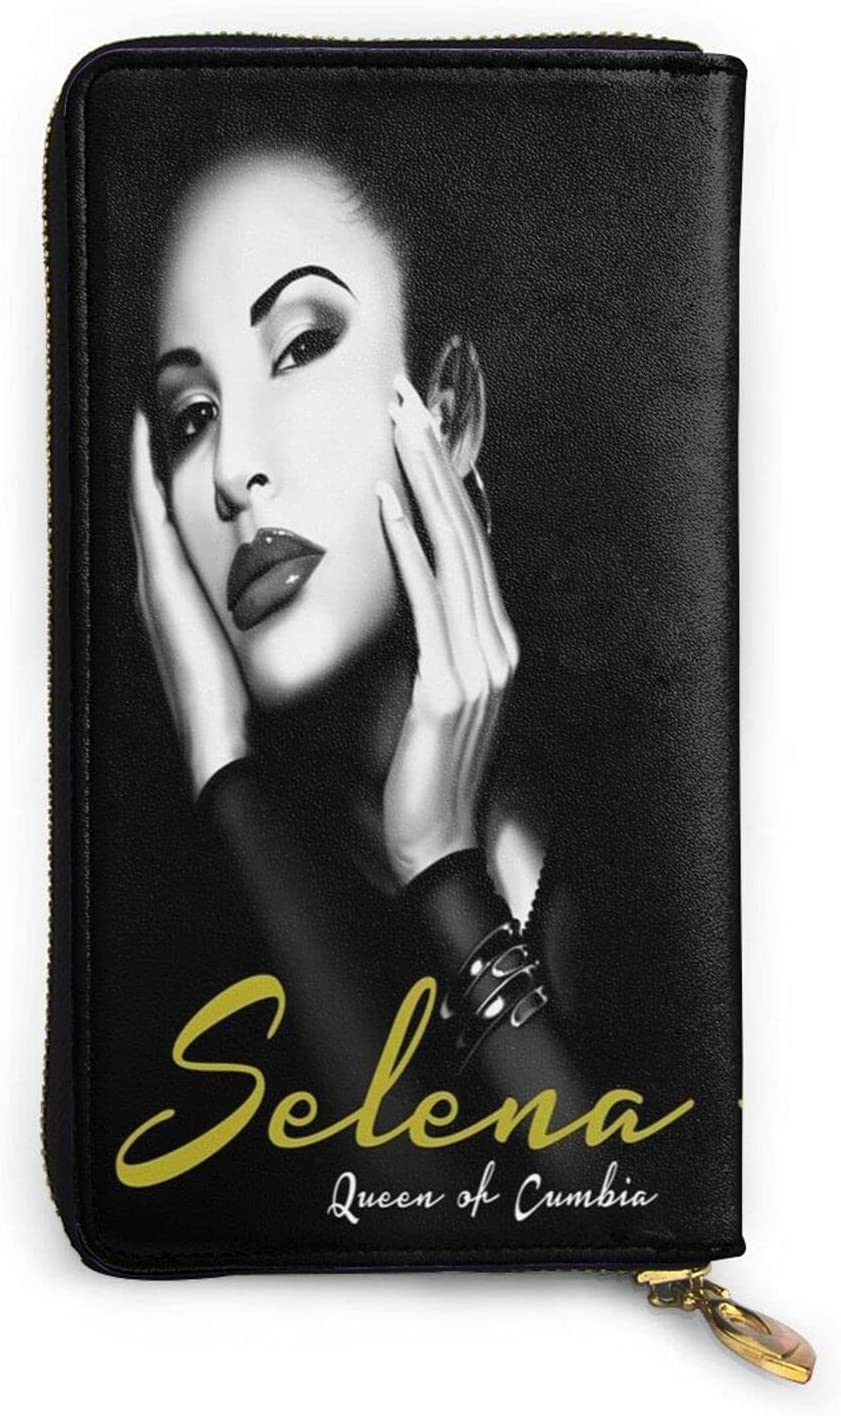 KAMIZE Selena Quintanilla Men'S And Women'S Ultra-Thin One-Piece Leather Wallets, Zipper Clutches, Coin Purses, Credit Cards Bag